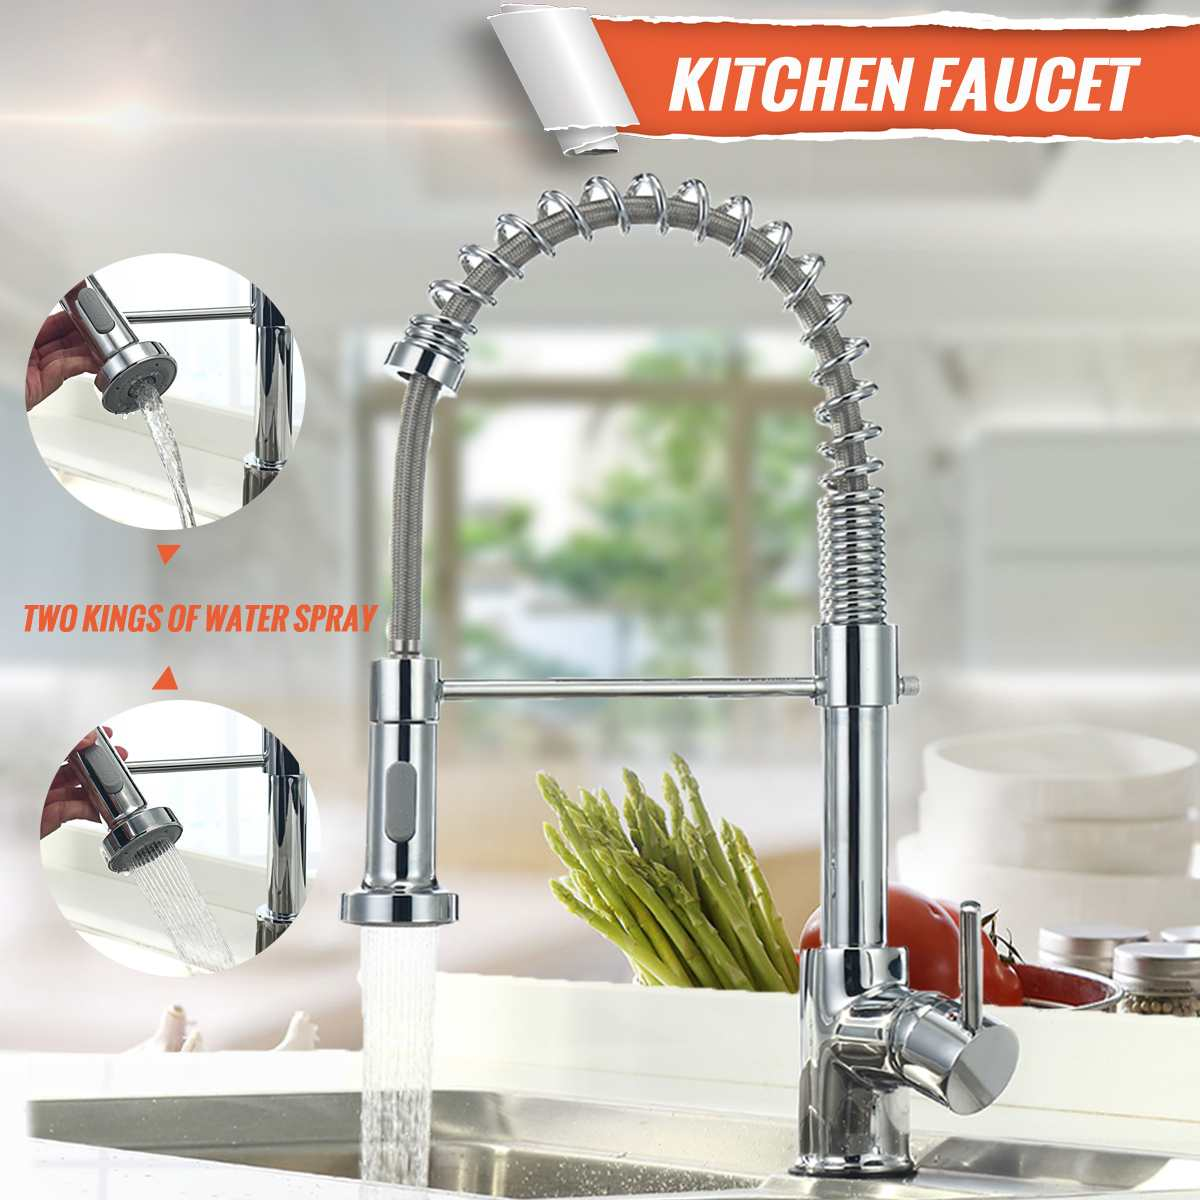 Xueqin 360 Rotation Pull Out Spring Chrome Kitchen Mixer Tap Single Handle Basin Faucet Deck Mounted Spray Hot and Cold WaterXueqin 360 Rotation Pull Out Spring Chrome Kitchen Mixer Tap Single Handle Basin Faucet Deck Mounted Spray Hot and Cold Water